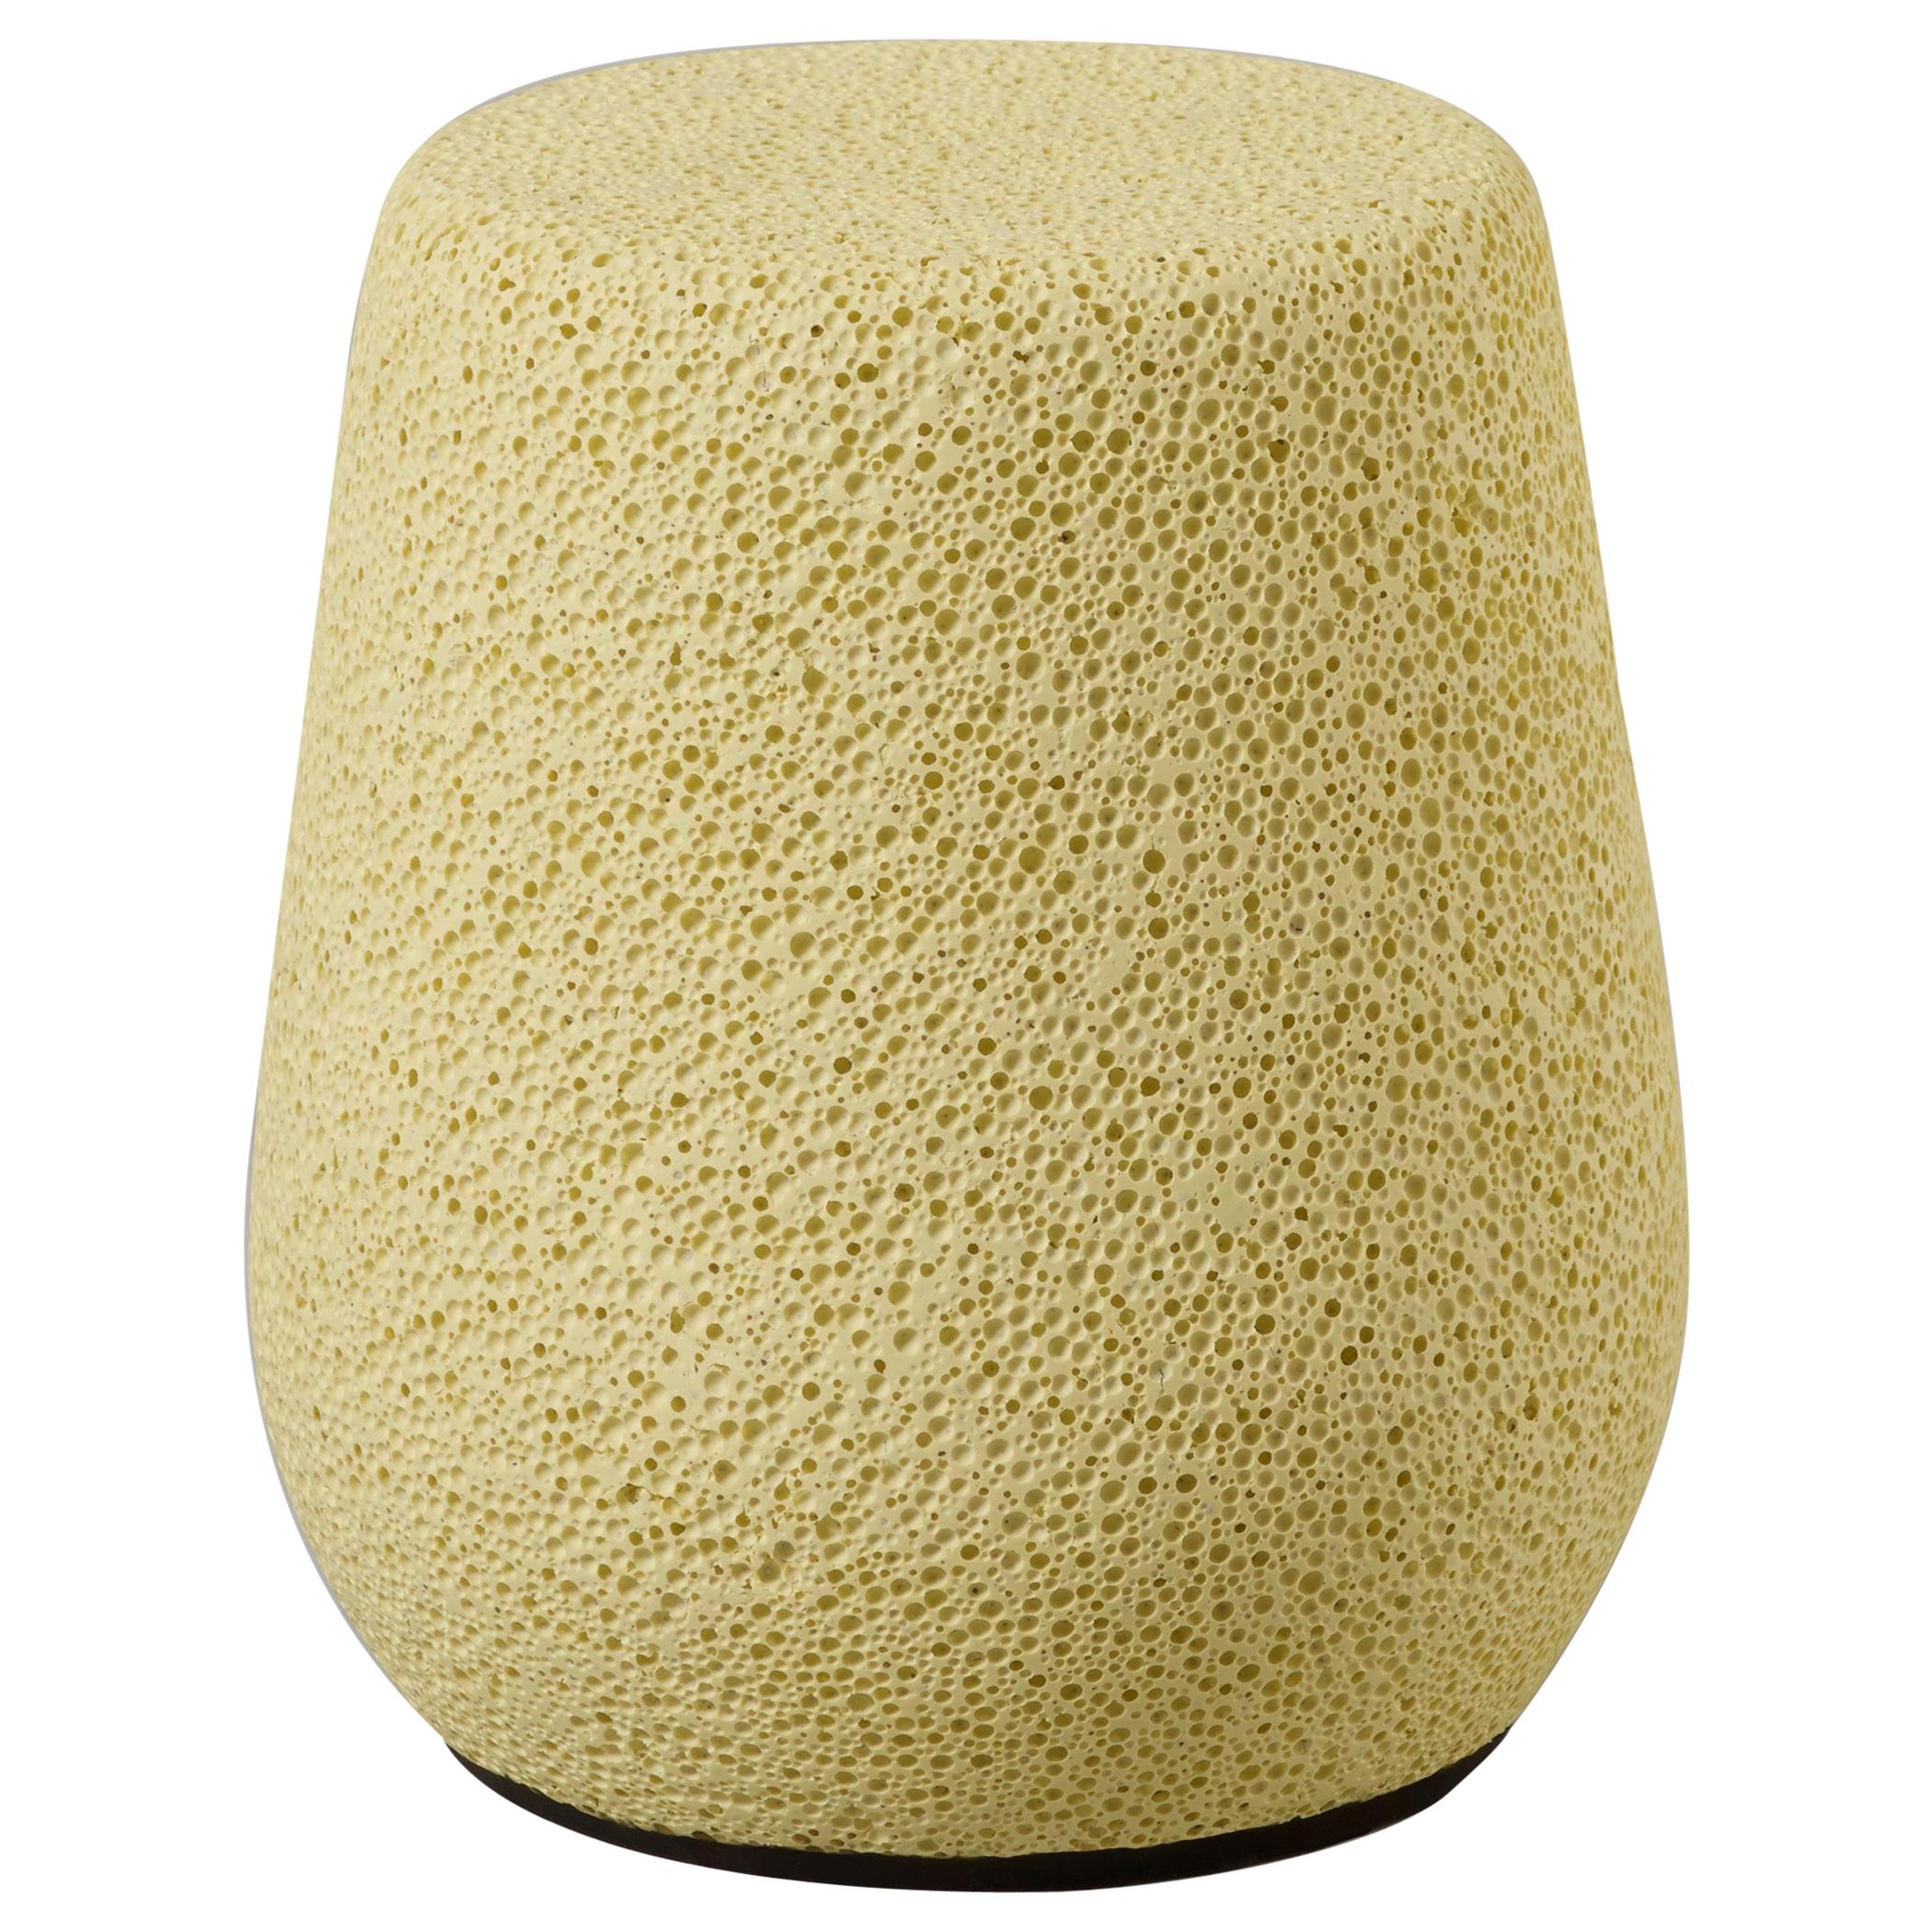 'Lightweight Porcelain' Children's Stool and Side Table by Djim Berger - Yellow